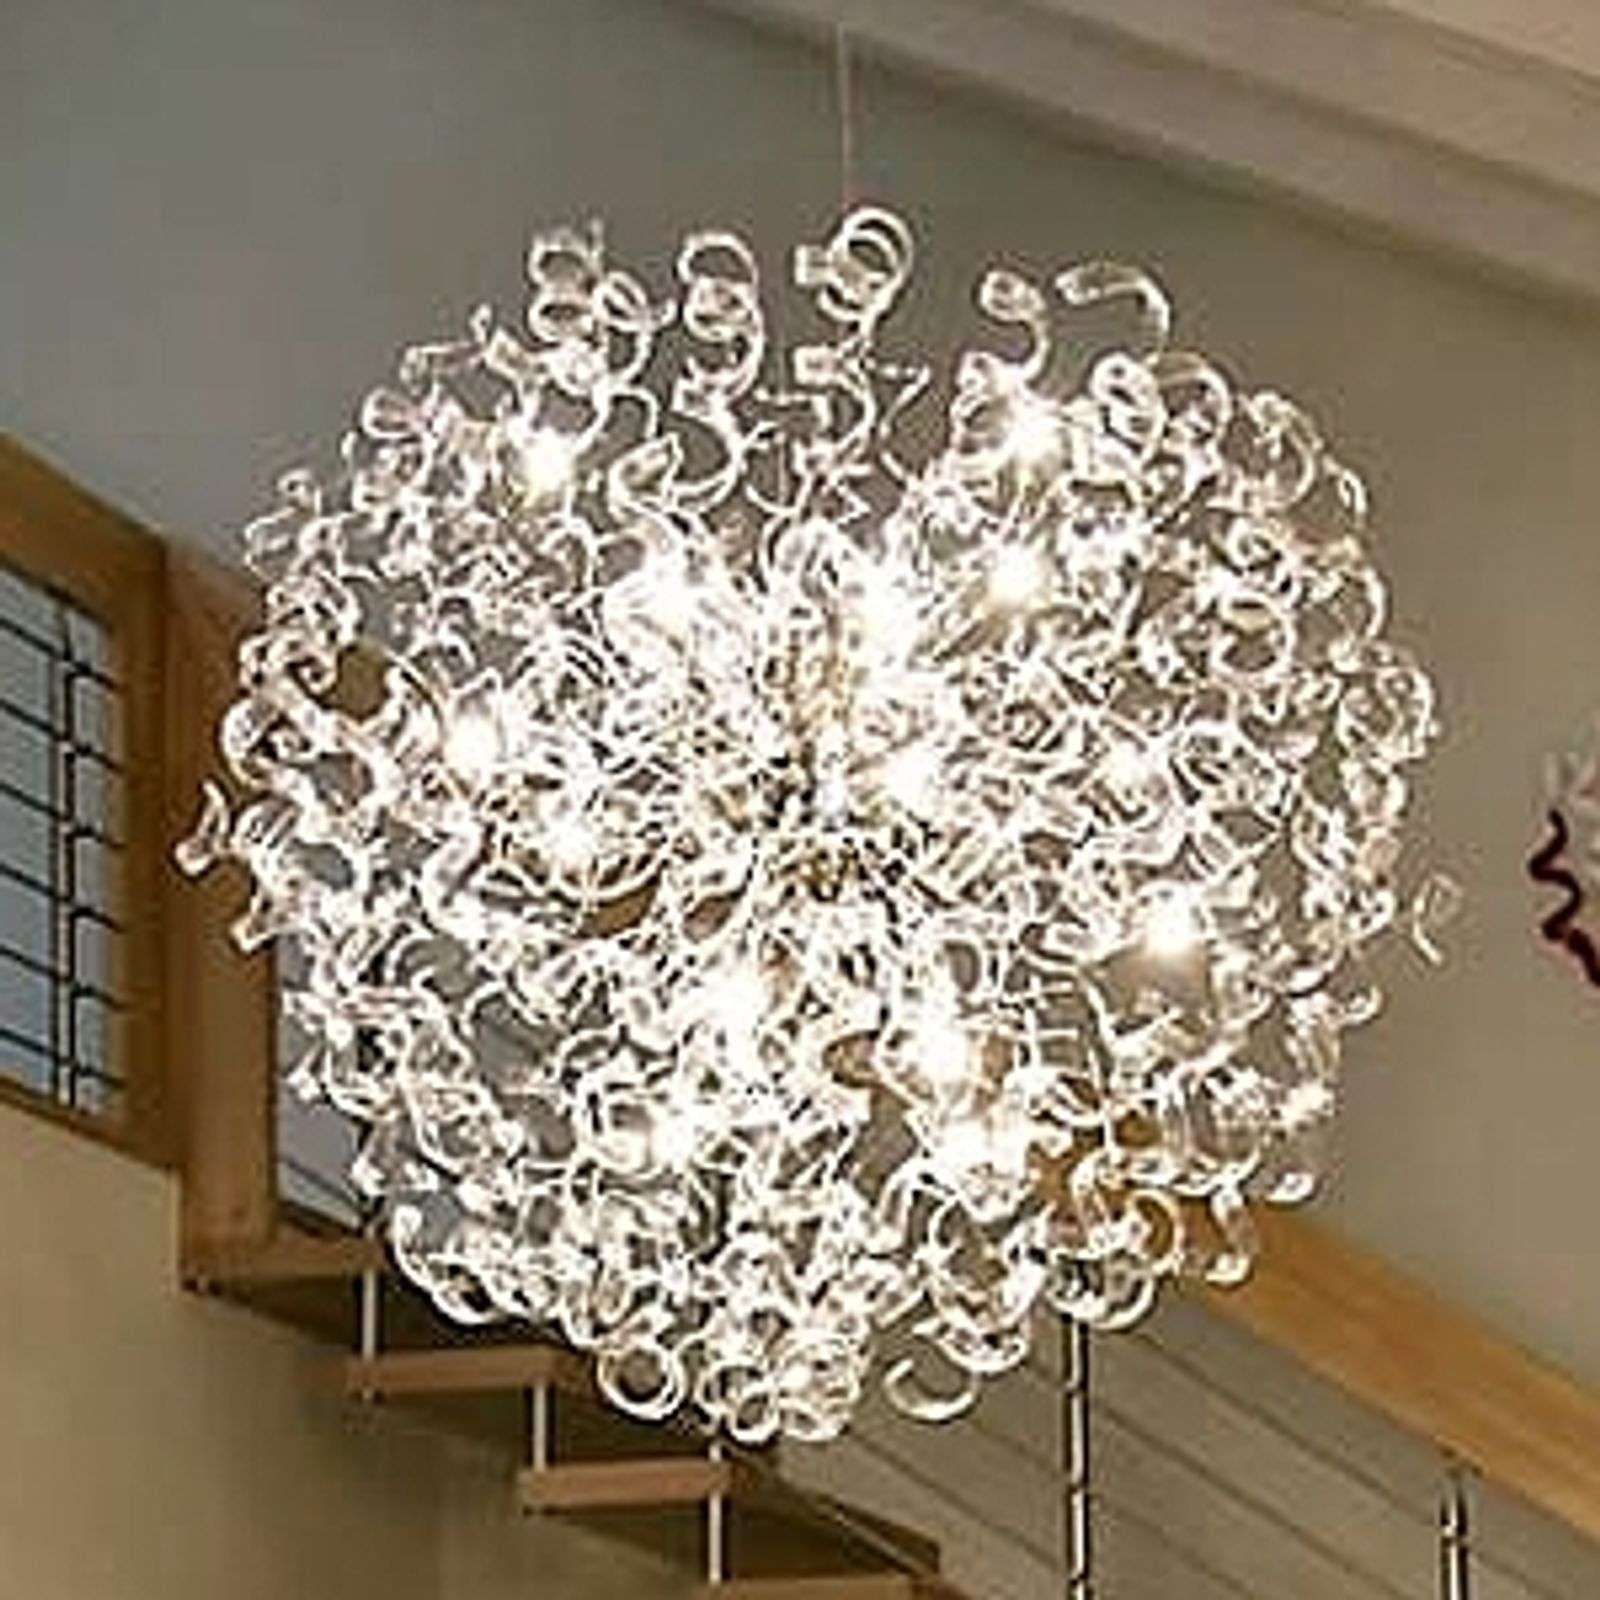 Suspension innovante CRYSTAL Boule, 115 cm